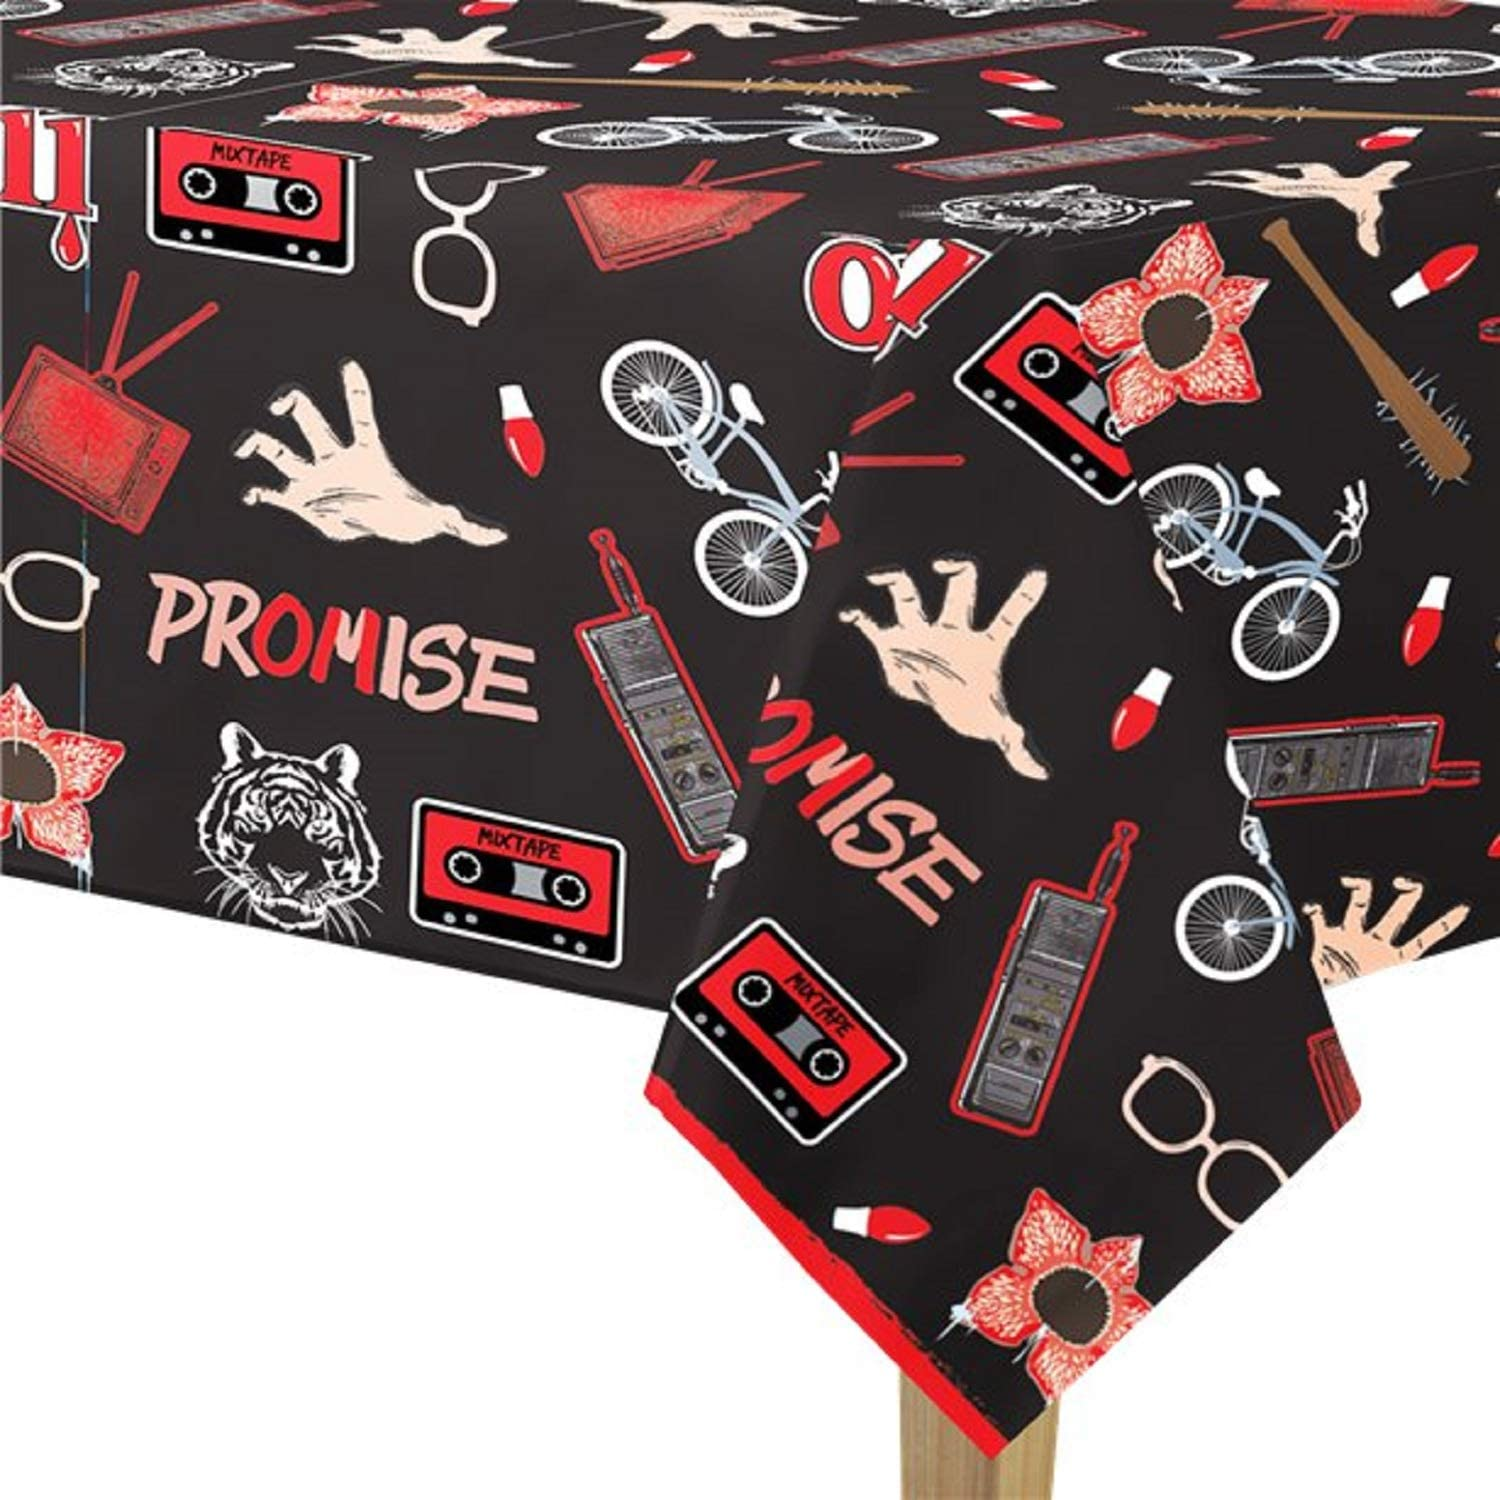 Official Stranger Things Tablecover Tablecloth TV Show Party Tableware Decorations Accessories Teen Birthday 1980s 80s